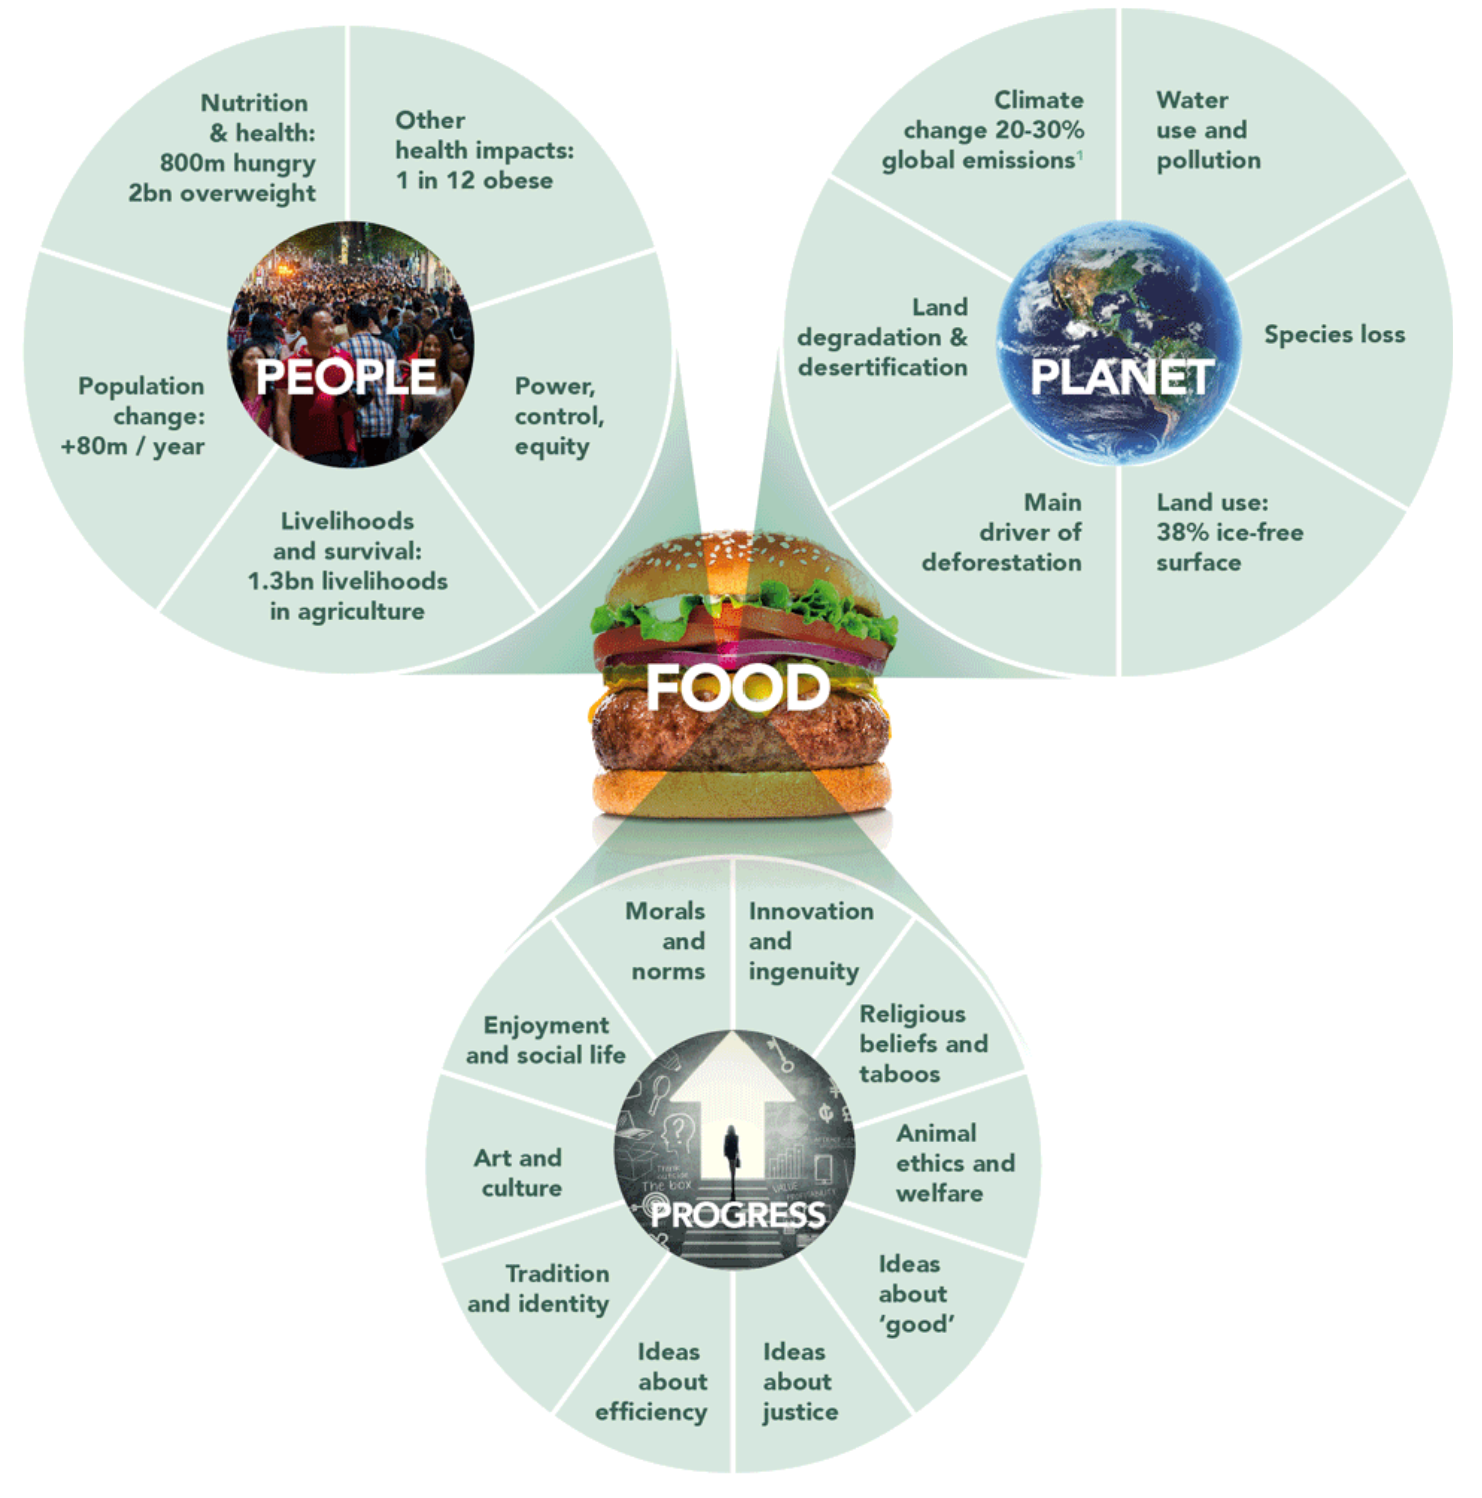 Figure 6: Connection between food systems and other issues and concerns